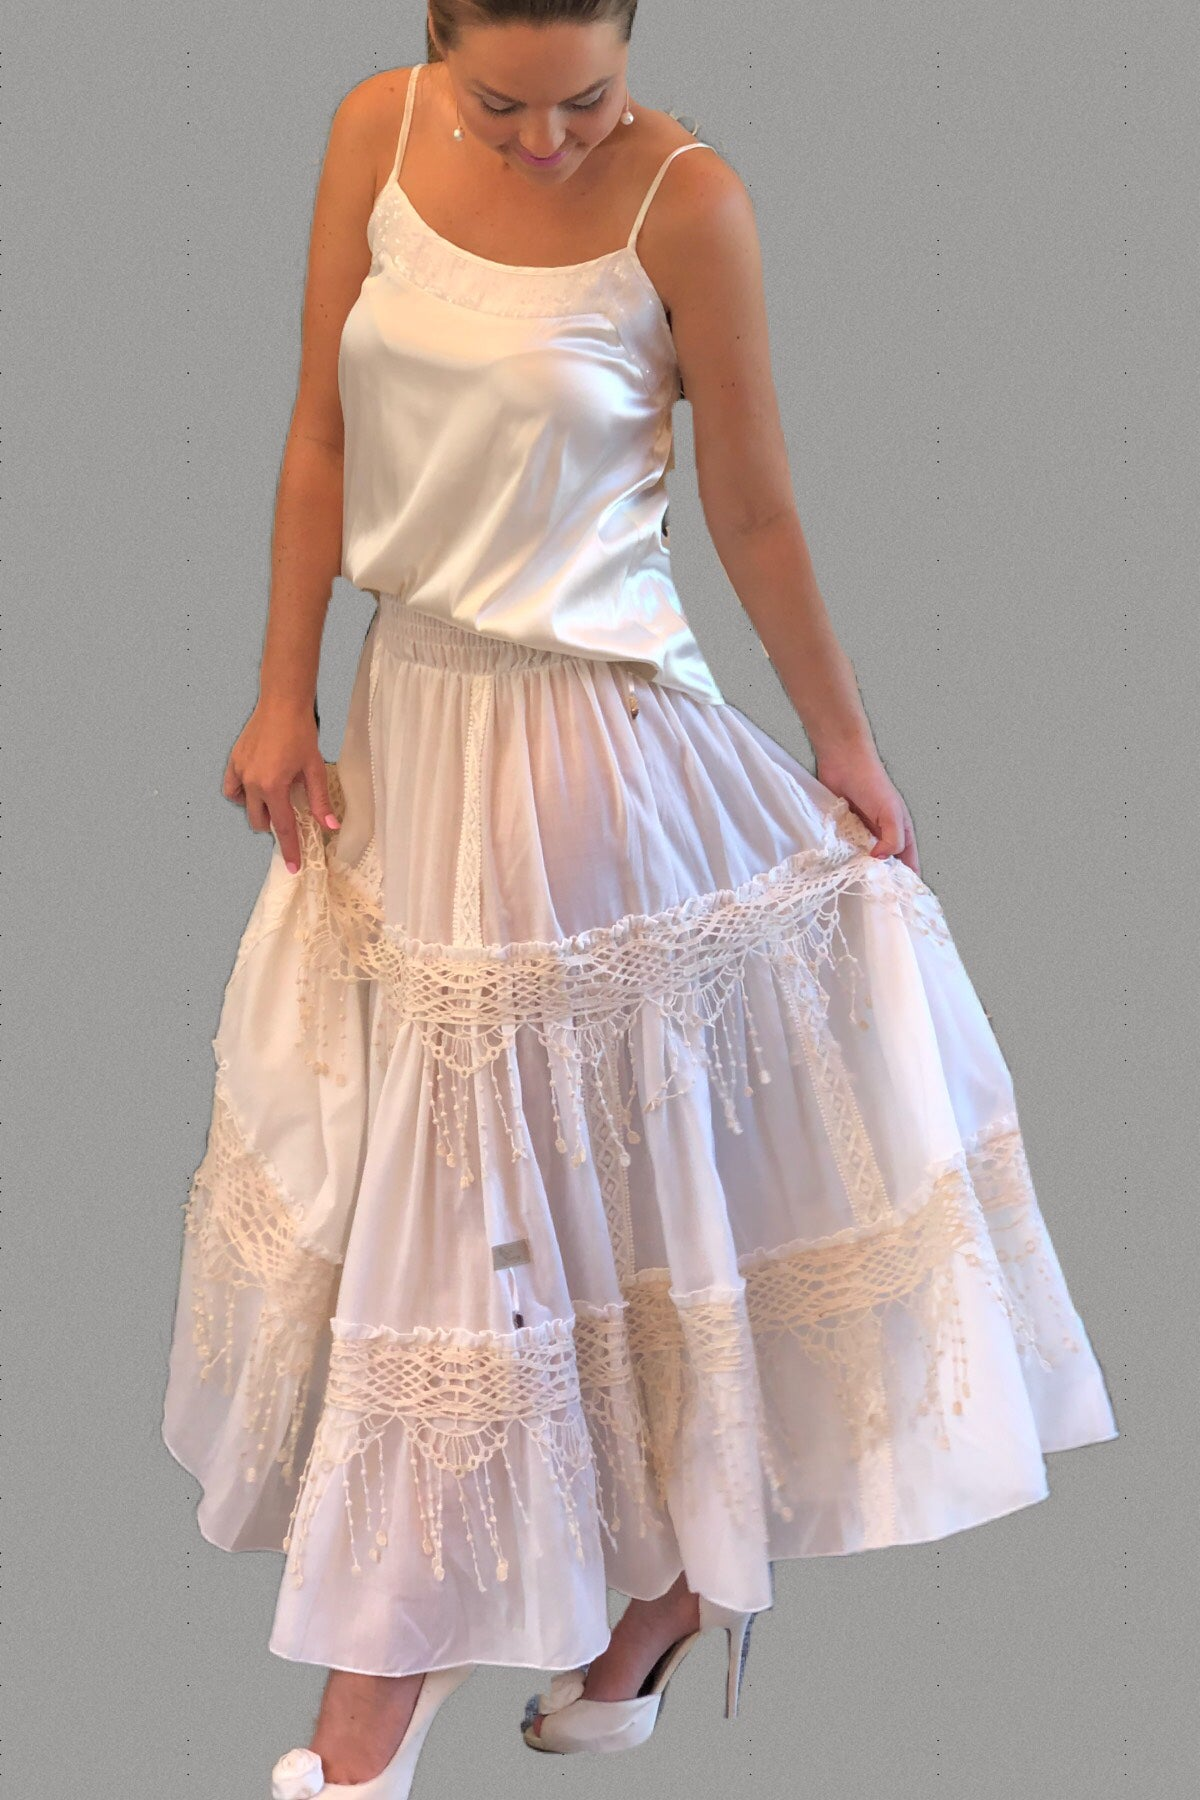 Festival Lace Skirt - Purity Lace Designs